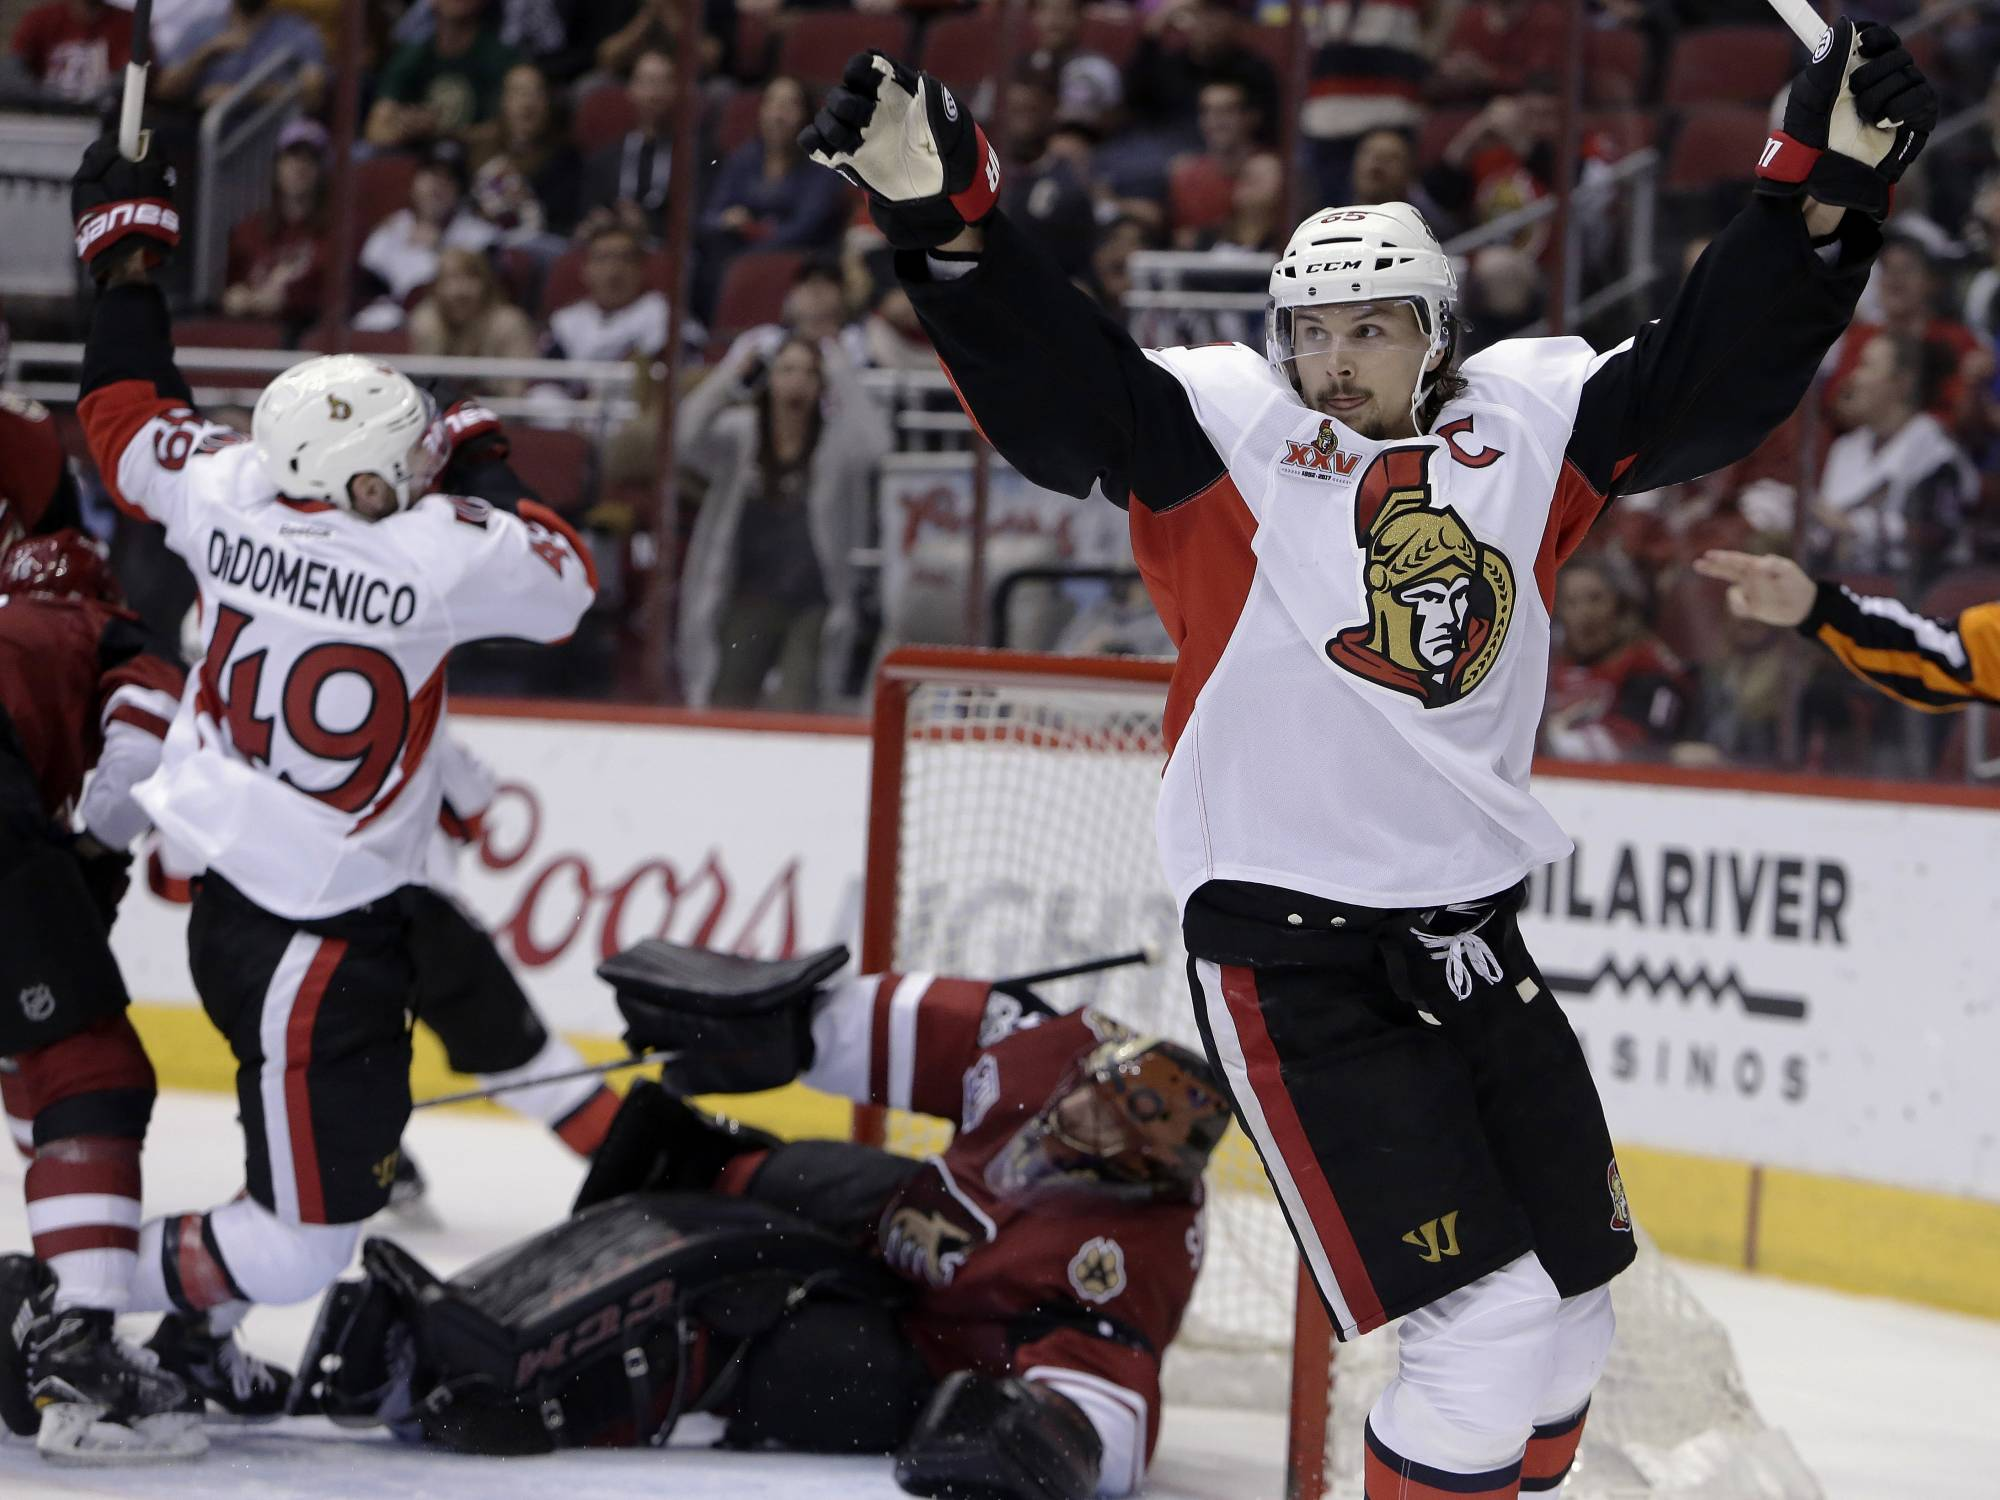 (AP) — Erik Karlsson scored twice, including 40 seconds into overtime, and  the Ottawa Senators edged the Arizona Coyotes 3-2 on Thursday night for  their ...